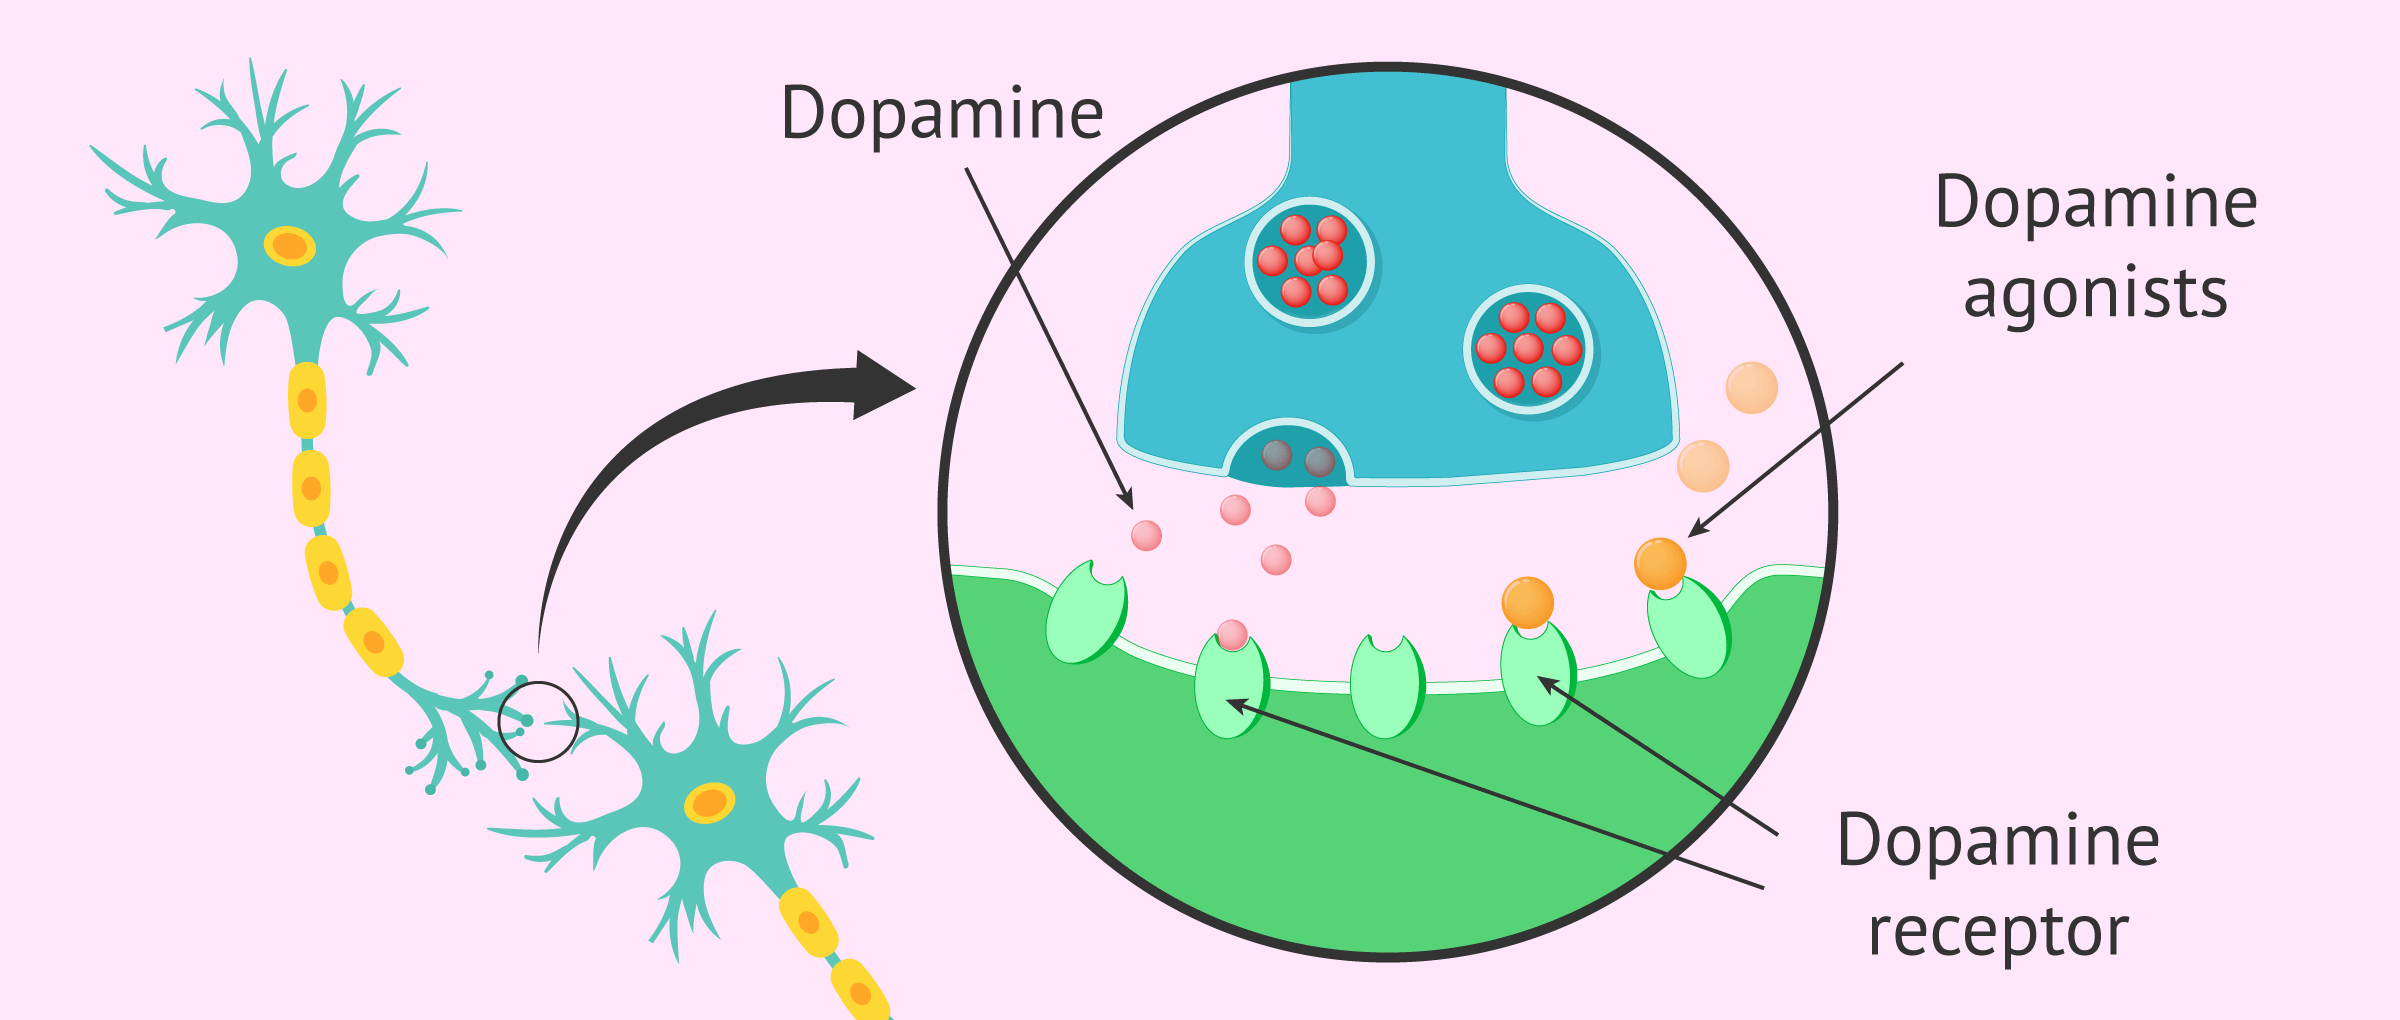 Treatment of hyperprolactinemia with dopamine agonists